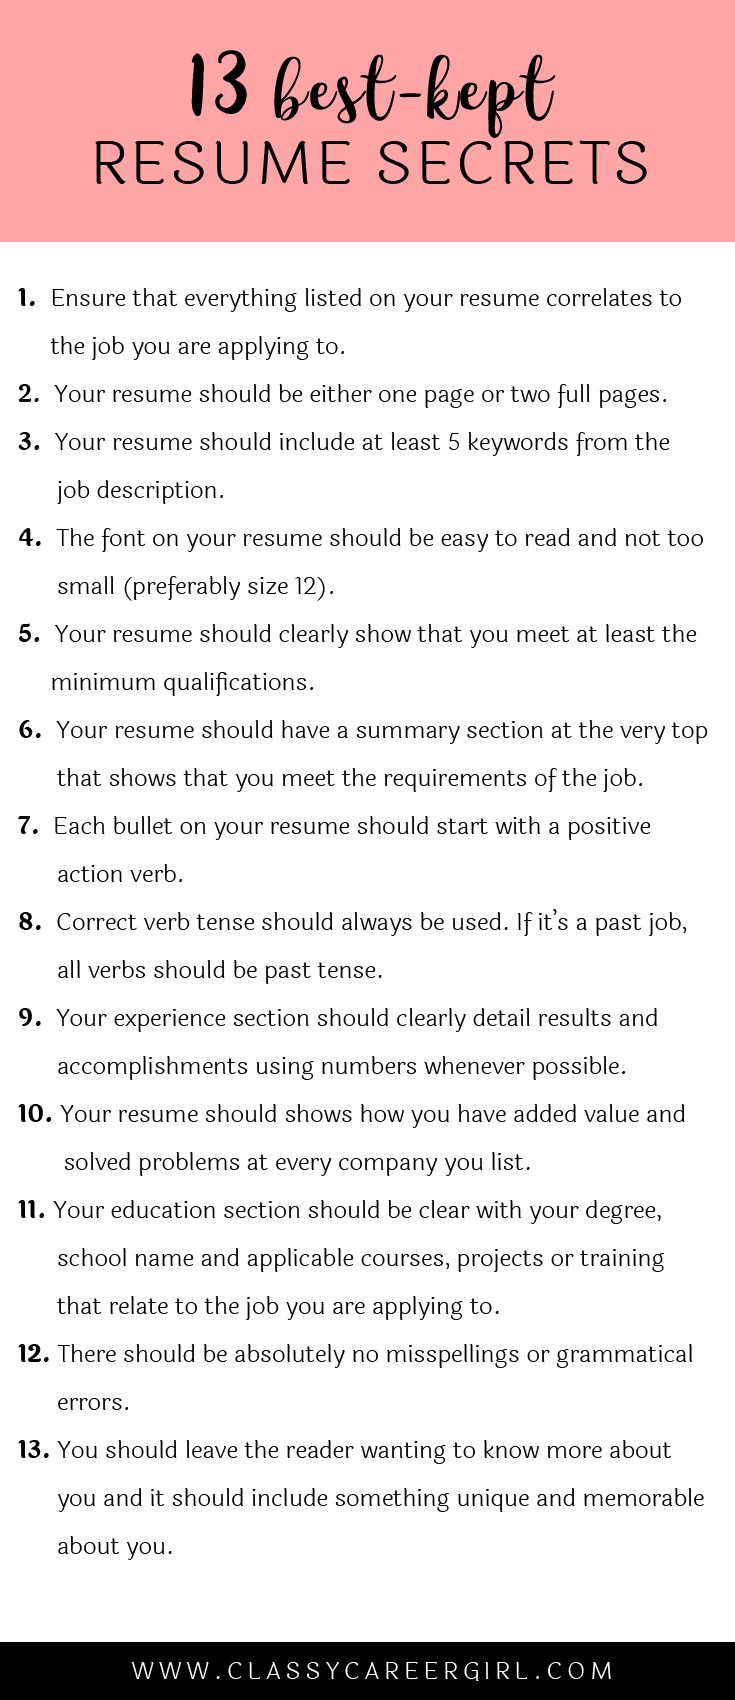 Opposenewapstandardsus  Pleasant  Ideas About Resume On Pinterest  Cv Format Resume Cv And  With Fair Some Hiring Managers Will Toss Your Resume Out If You Dont Know These  With Archaic Resume For Factory Worker Also Resume Wikipedia In Addition Examples Of Resumes For Nurses And Words To Avoid In Resume As Well As Certifications For Resume Additionally Picture Resume From Pinterestcom With Opposenewapstandardsus  Fair  Ideas About Resume On Pinterest  Cv Format Resume Cv And  With Archaic Some Hiring Managers Will Toss Your Resume Out If You Dont Know These  And Pleasant Resume For Factory Worker Also Resume Wikipedia In Addition Examples Of Resumes For Nurses From Pinterestcom